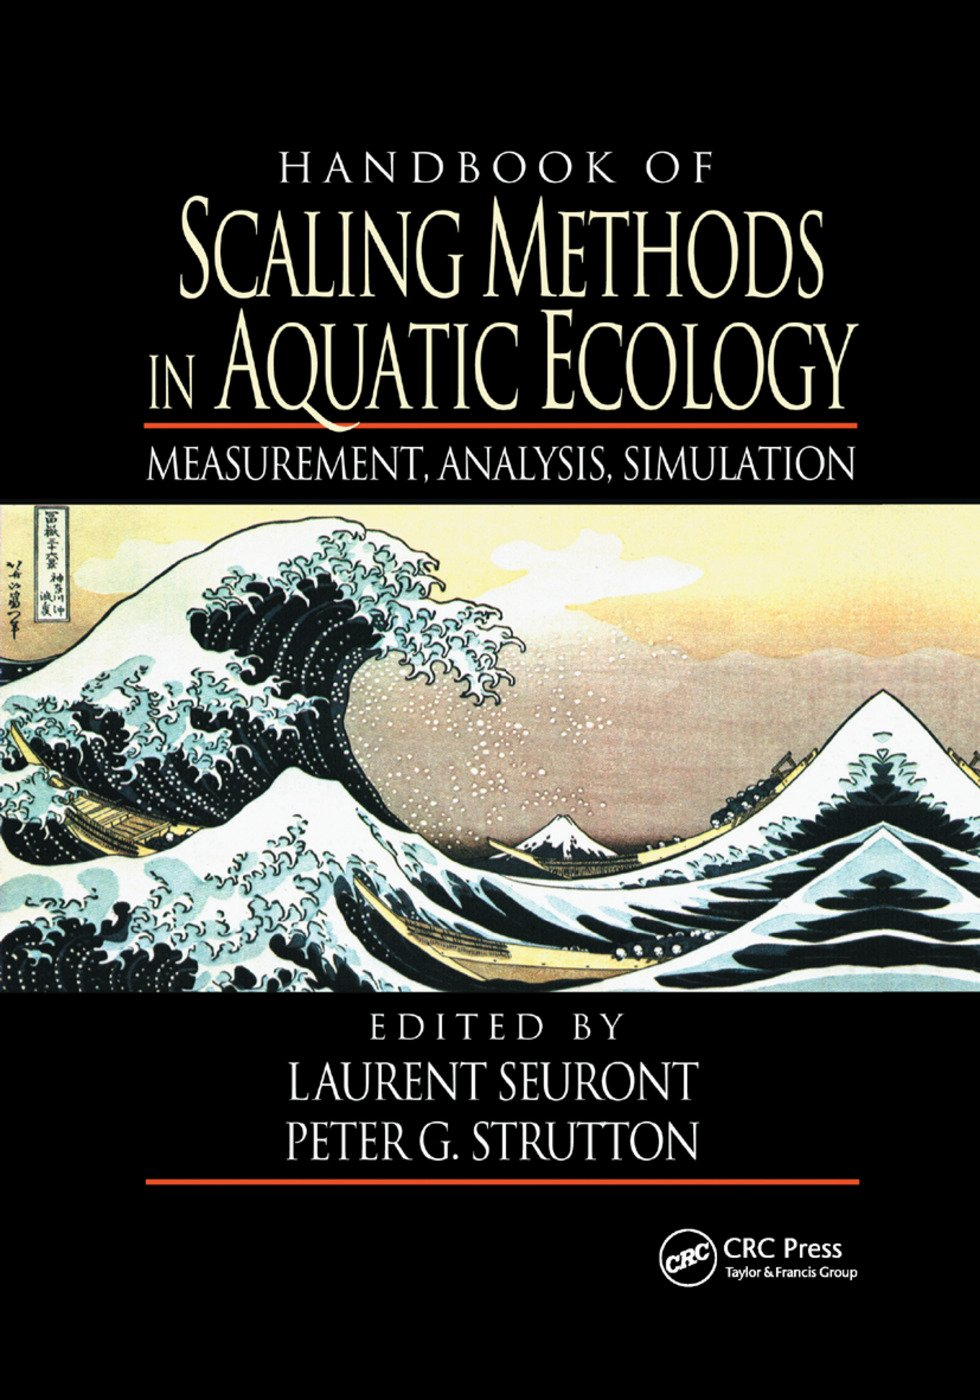 Handbook of Scaling Methods in Aquatic Ecology: Measurement, Analysis, Simulation, 1st Edition (Paperback) book cover